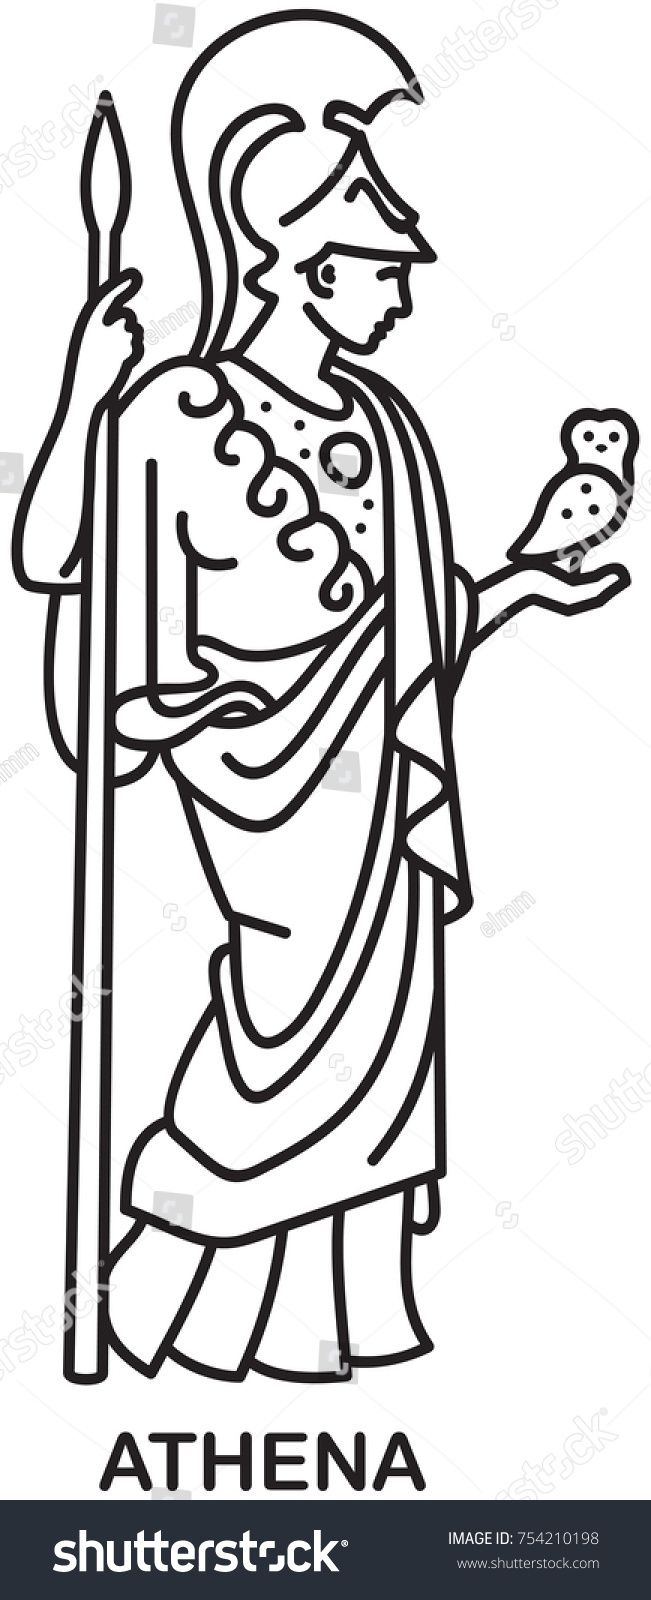 Athena, Ancient Greek goddess of wisdom, craft, and war line draw.